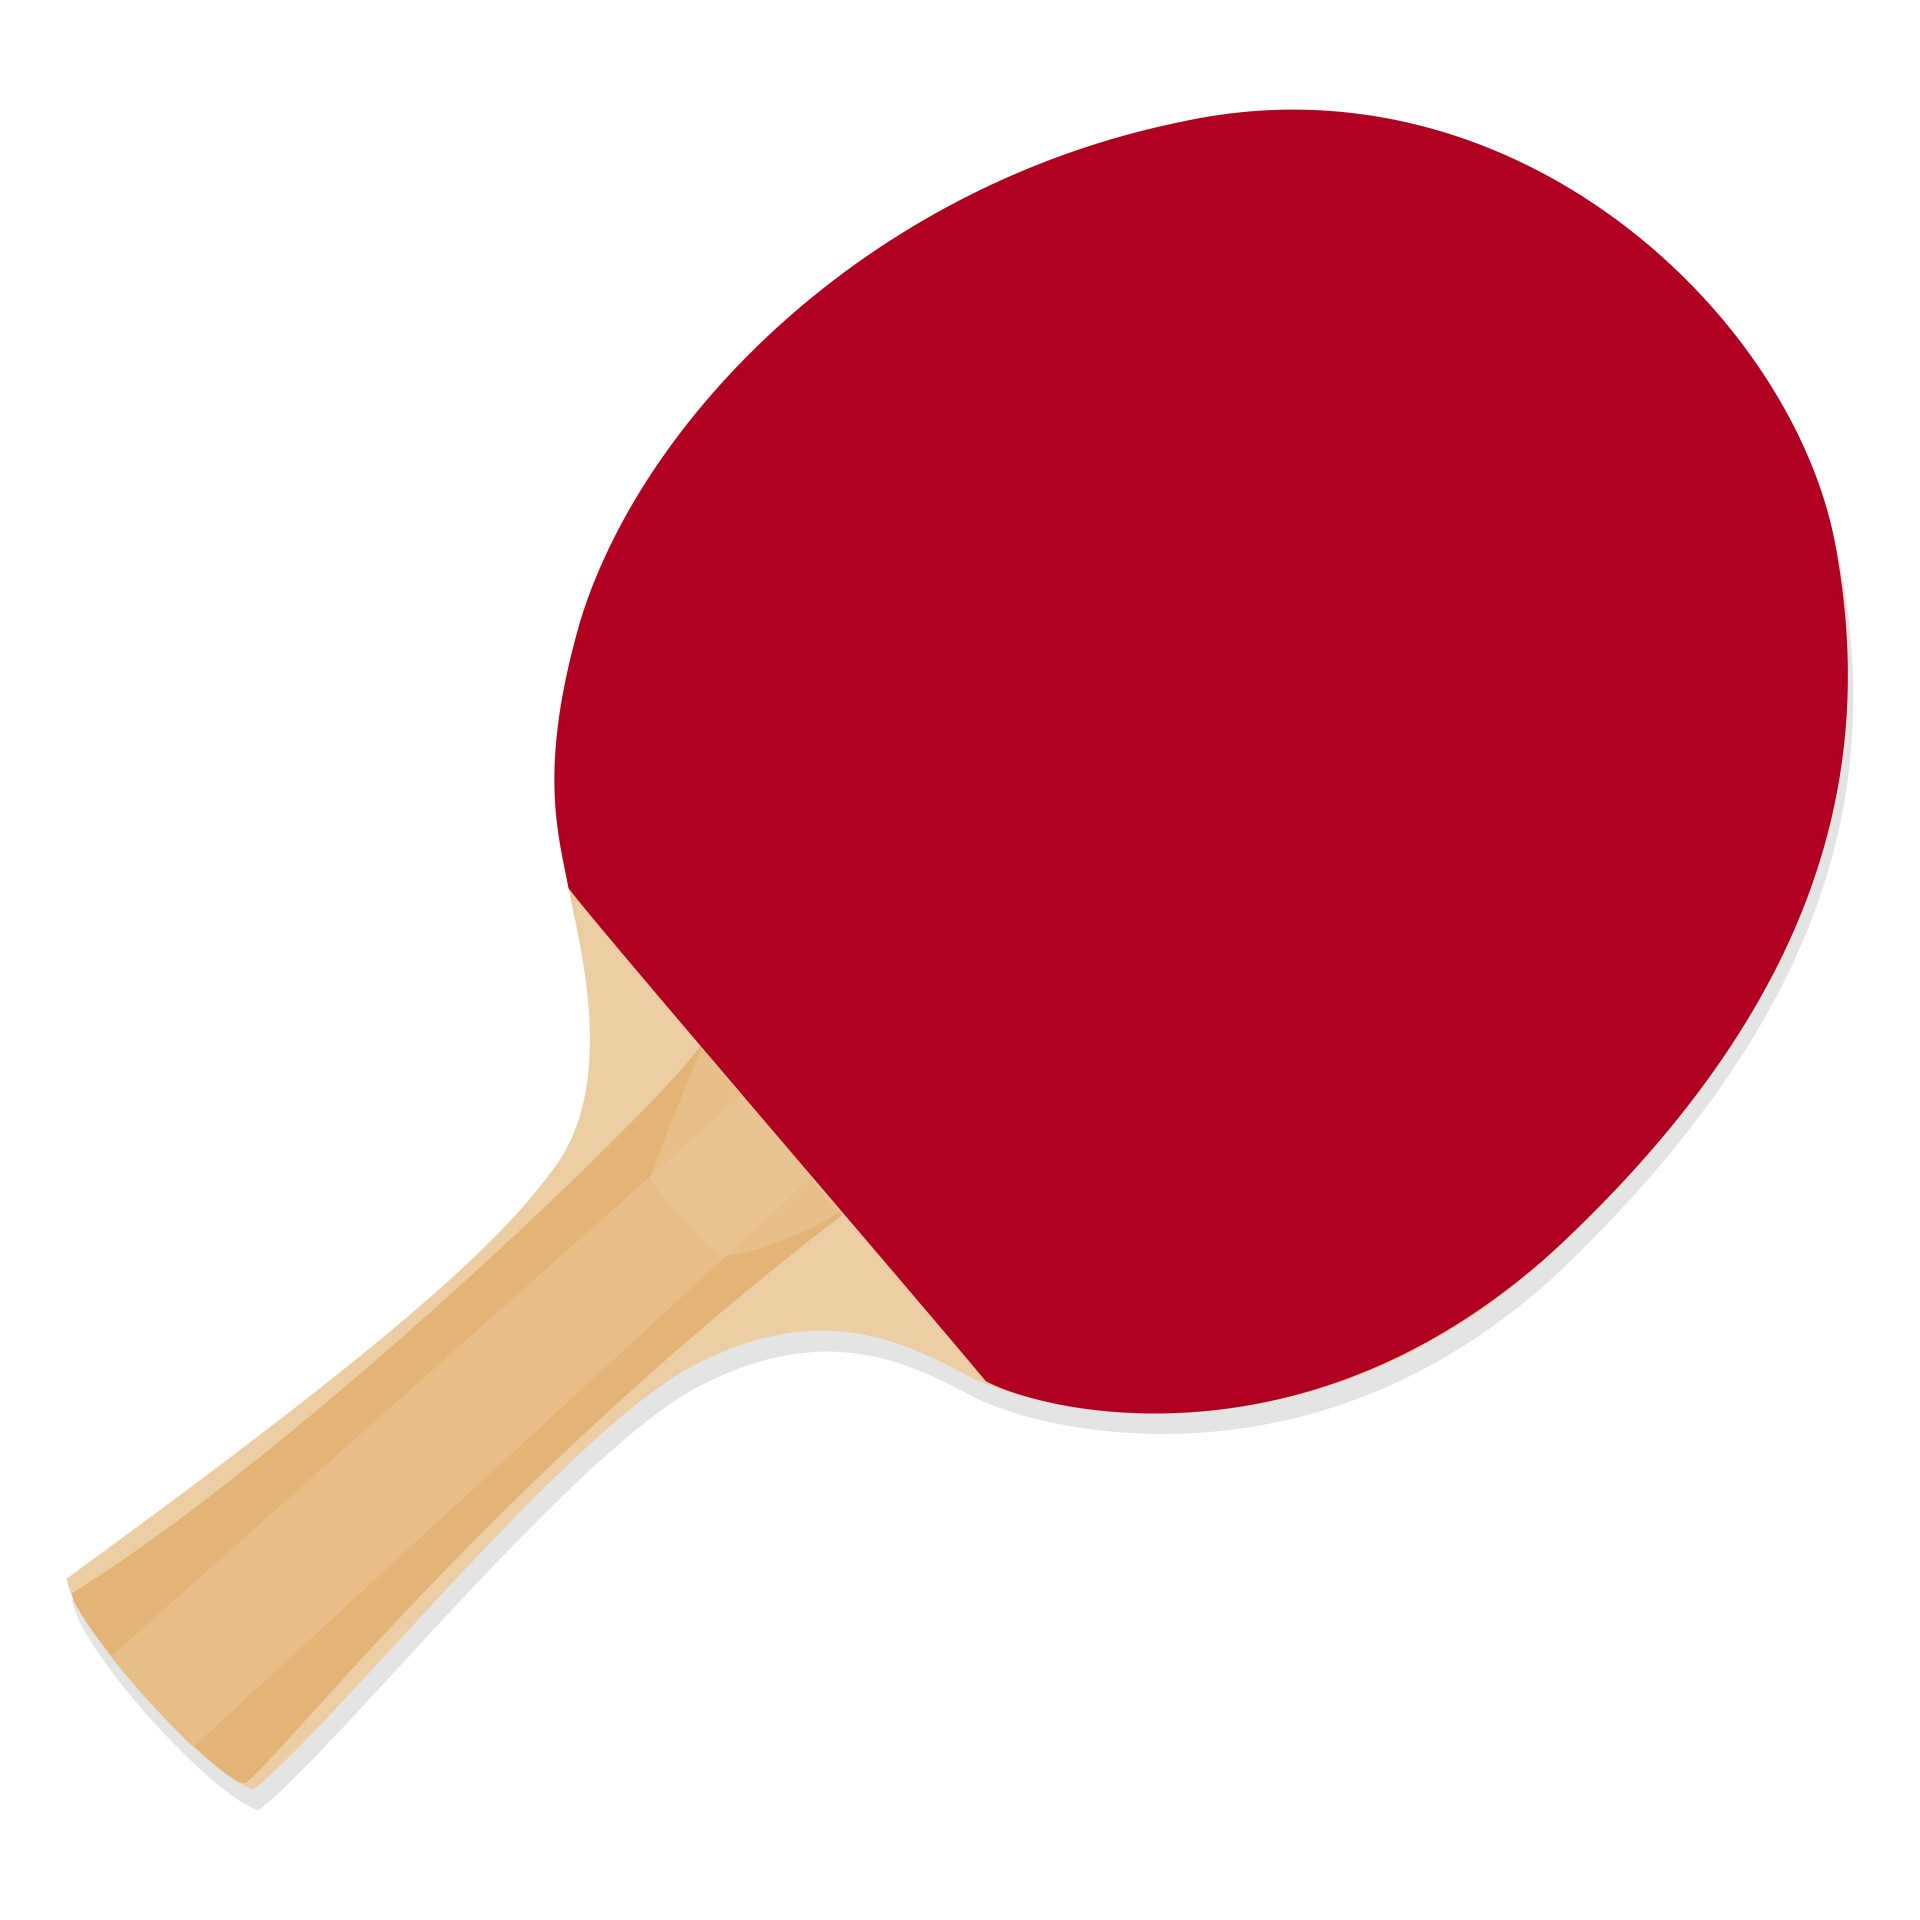 Table Tennis Images.